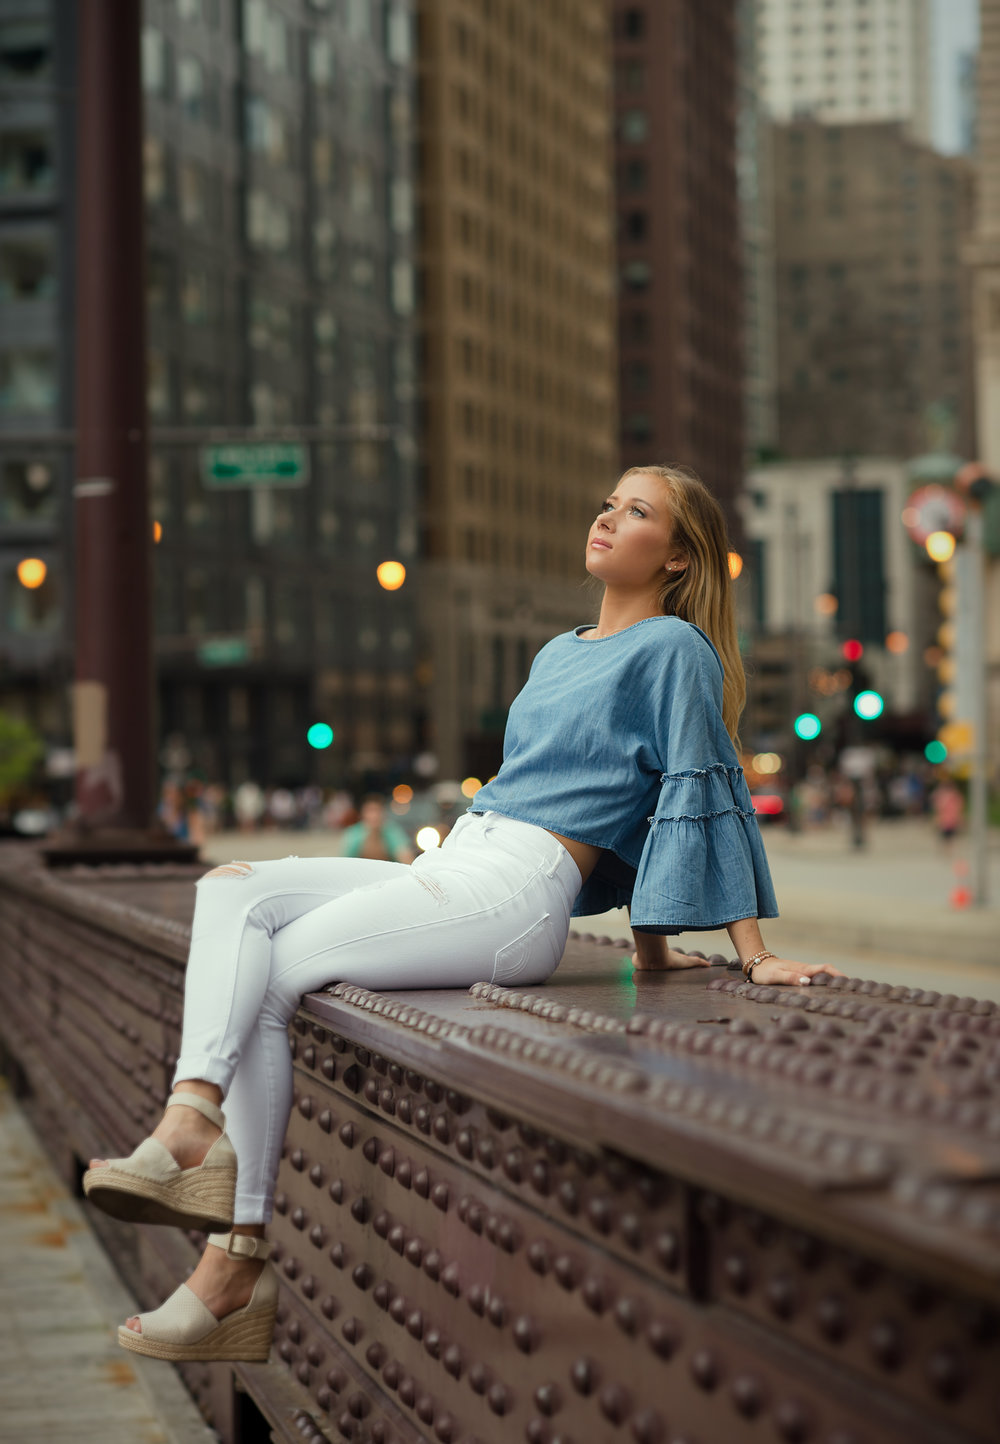 Big City - For the Fashionistas & City Lovers